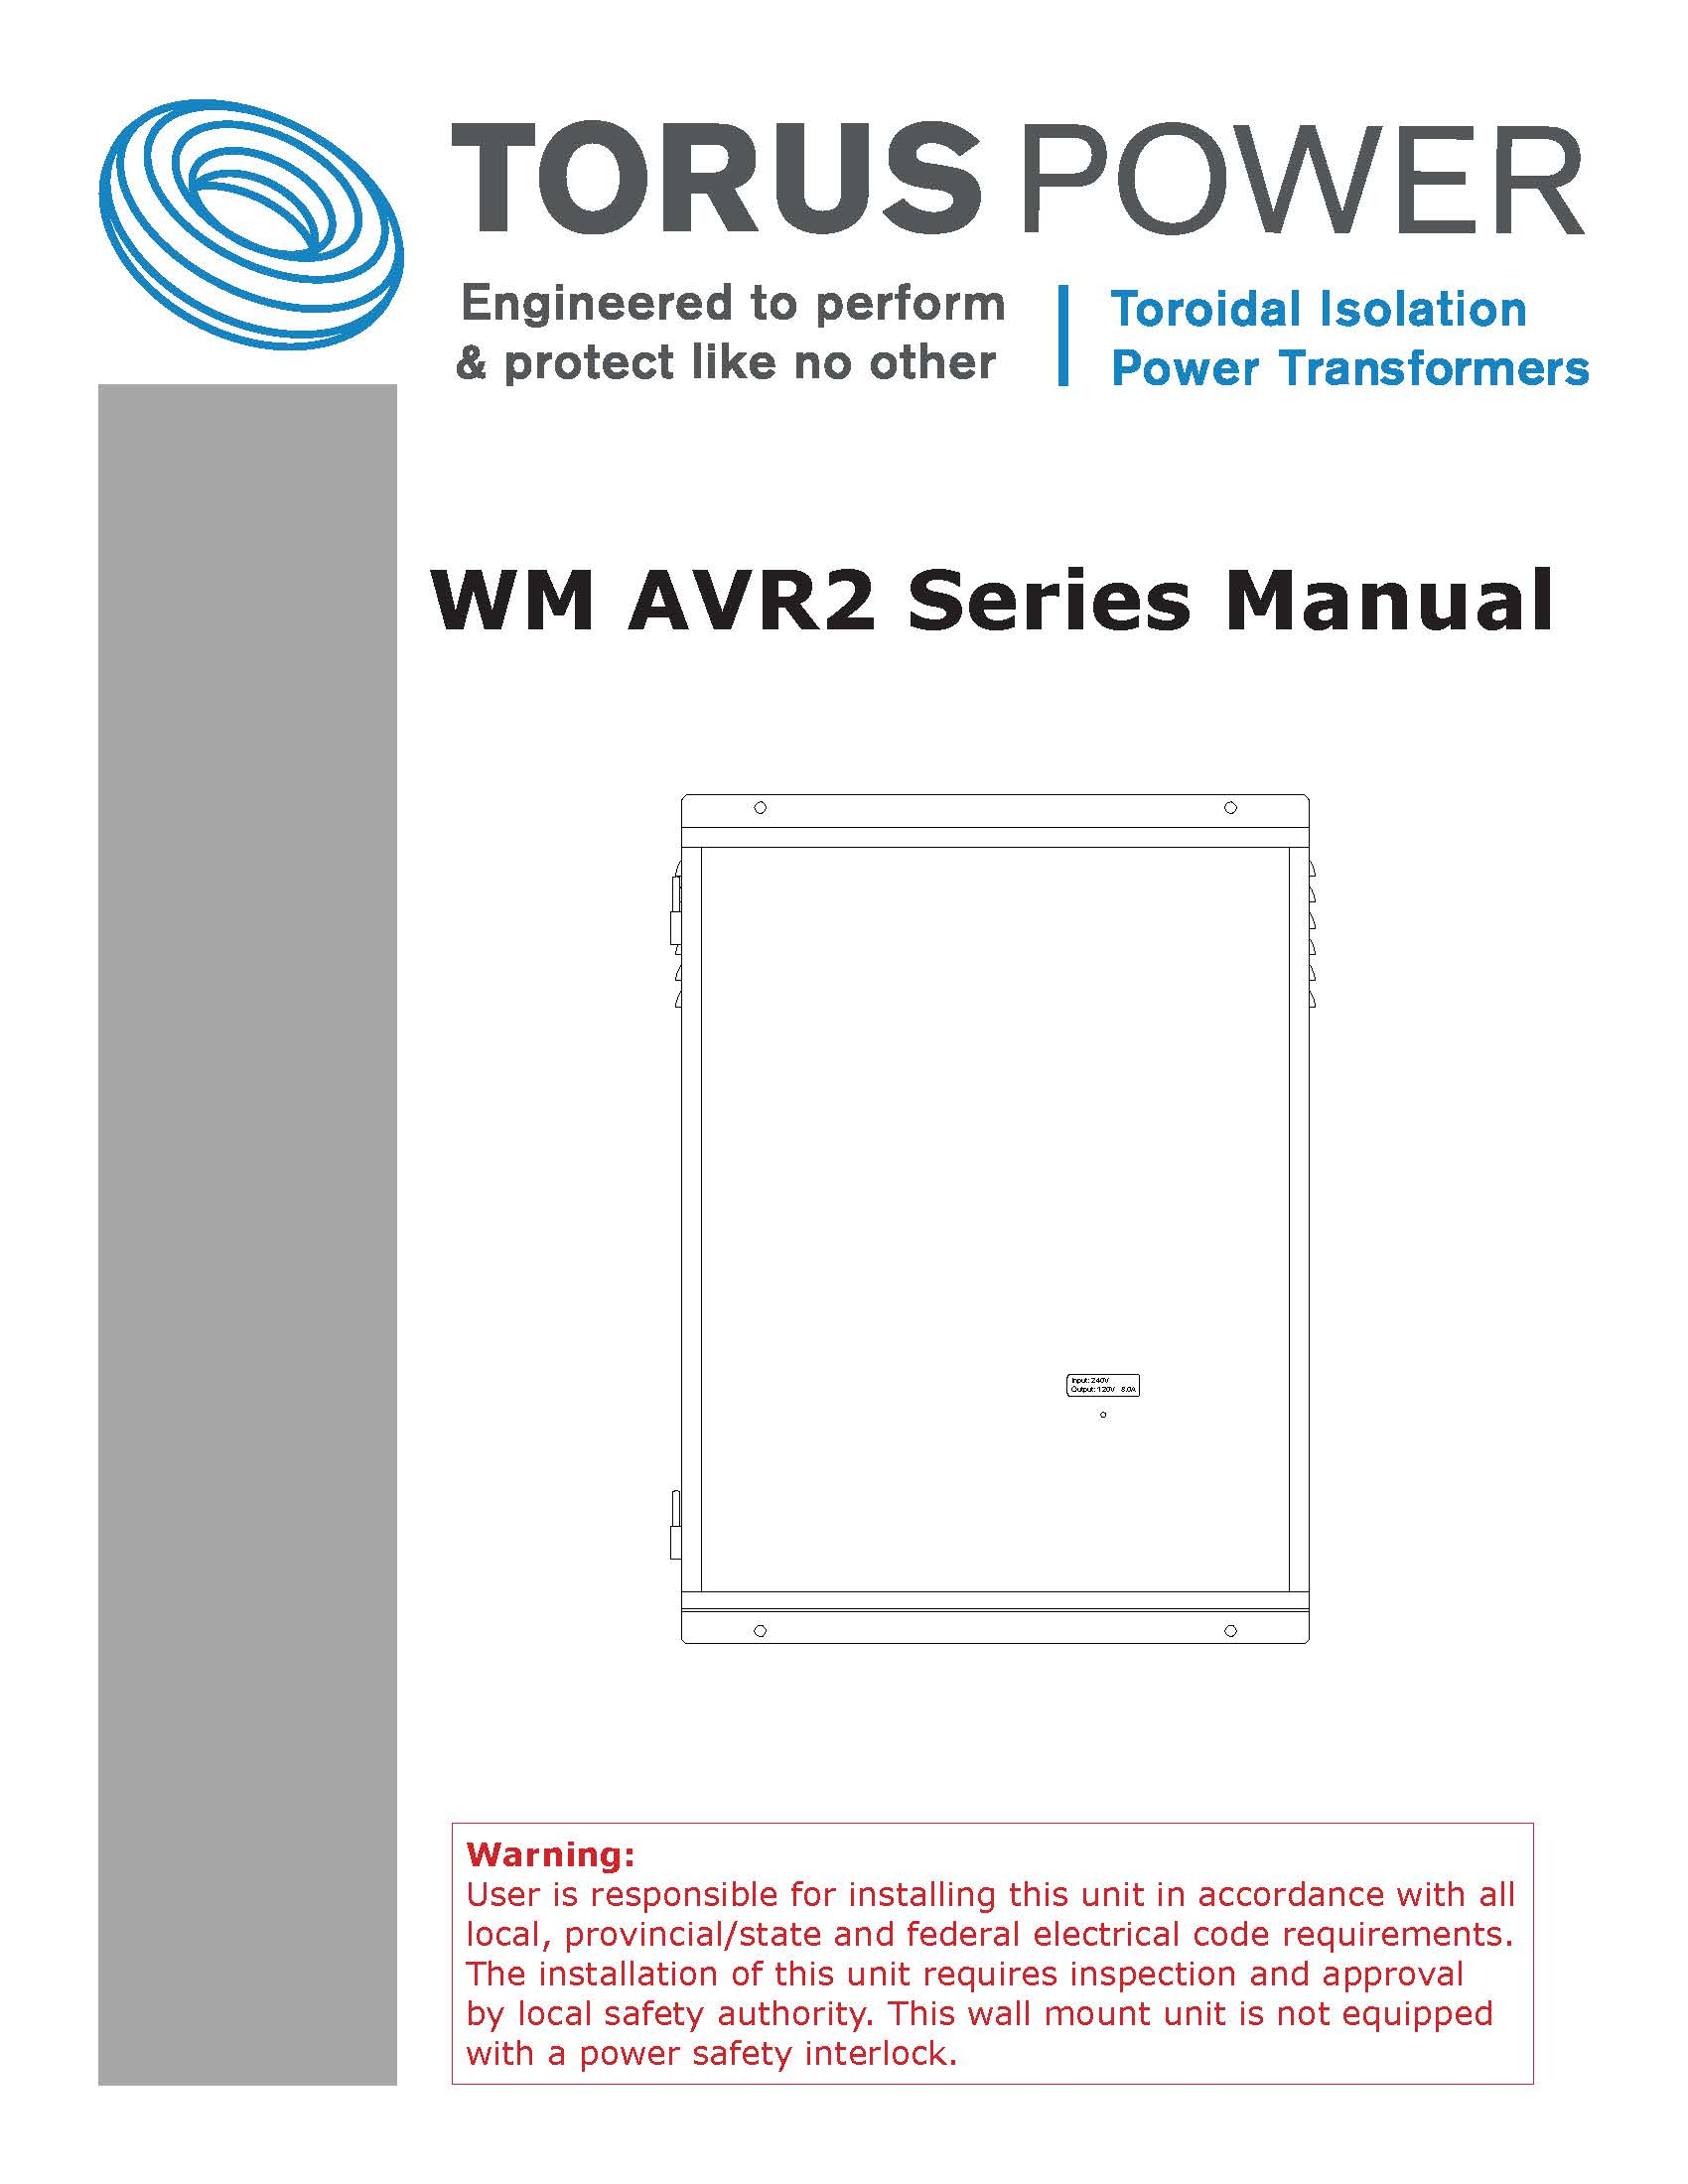 AVR-2 ELITE Owner's Manual